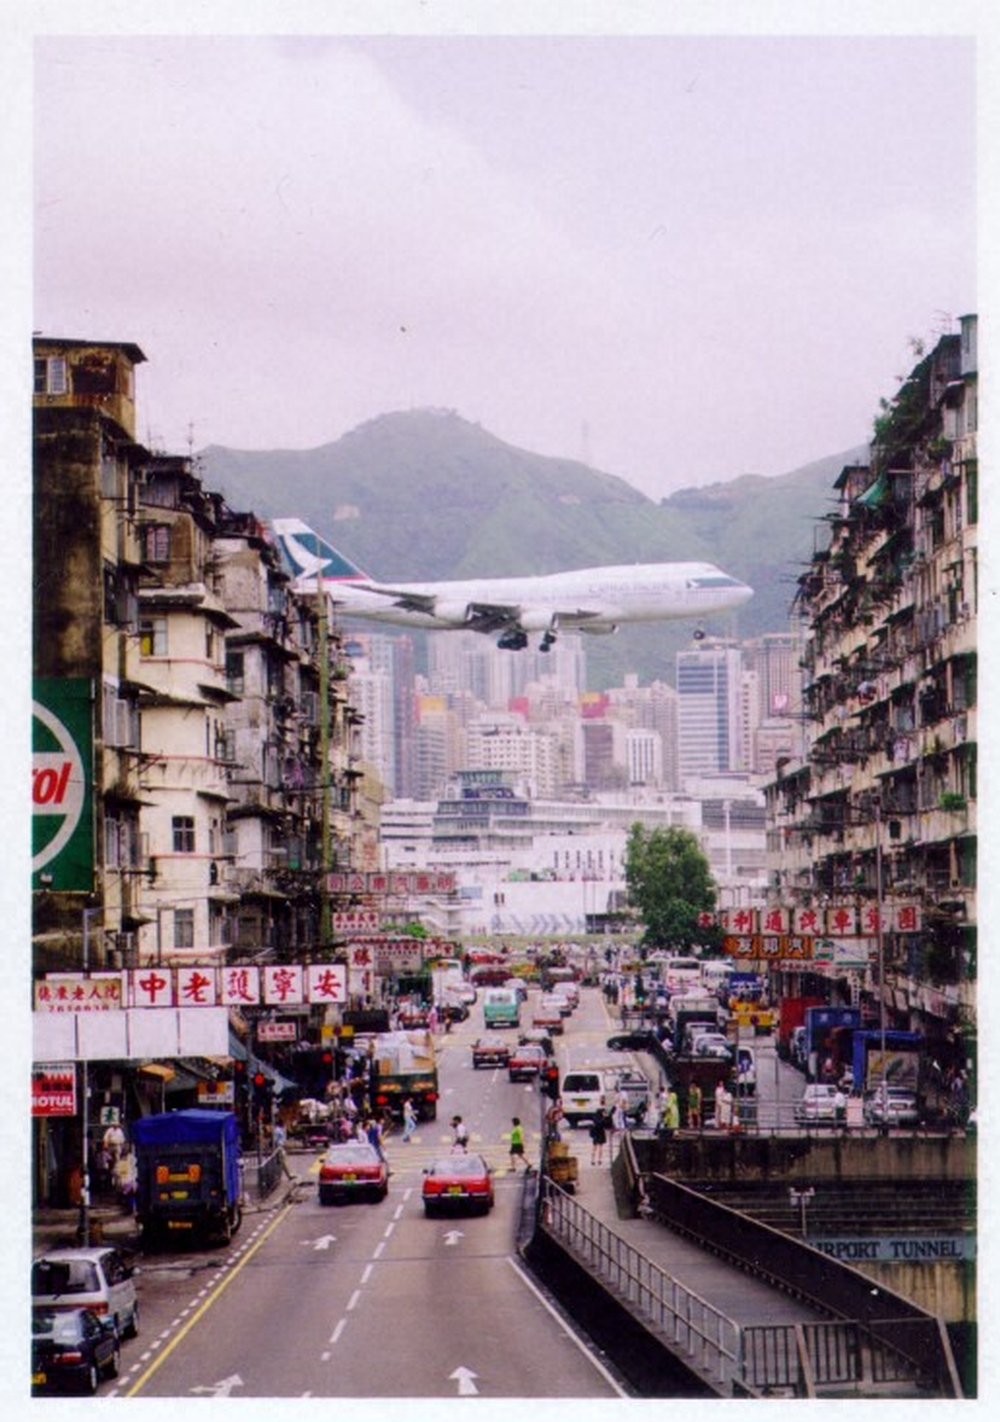 A_CX_Final_Approach_to_KaiTak.jpg